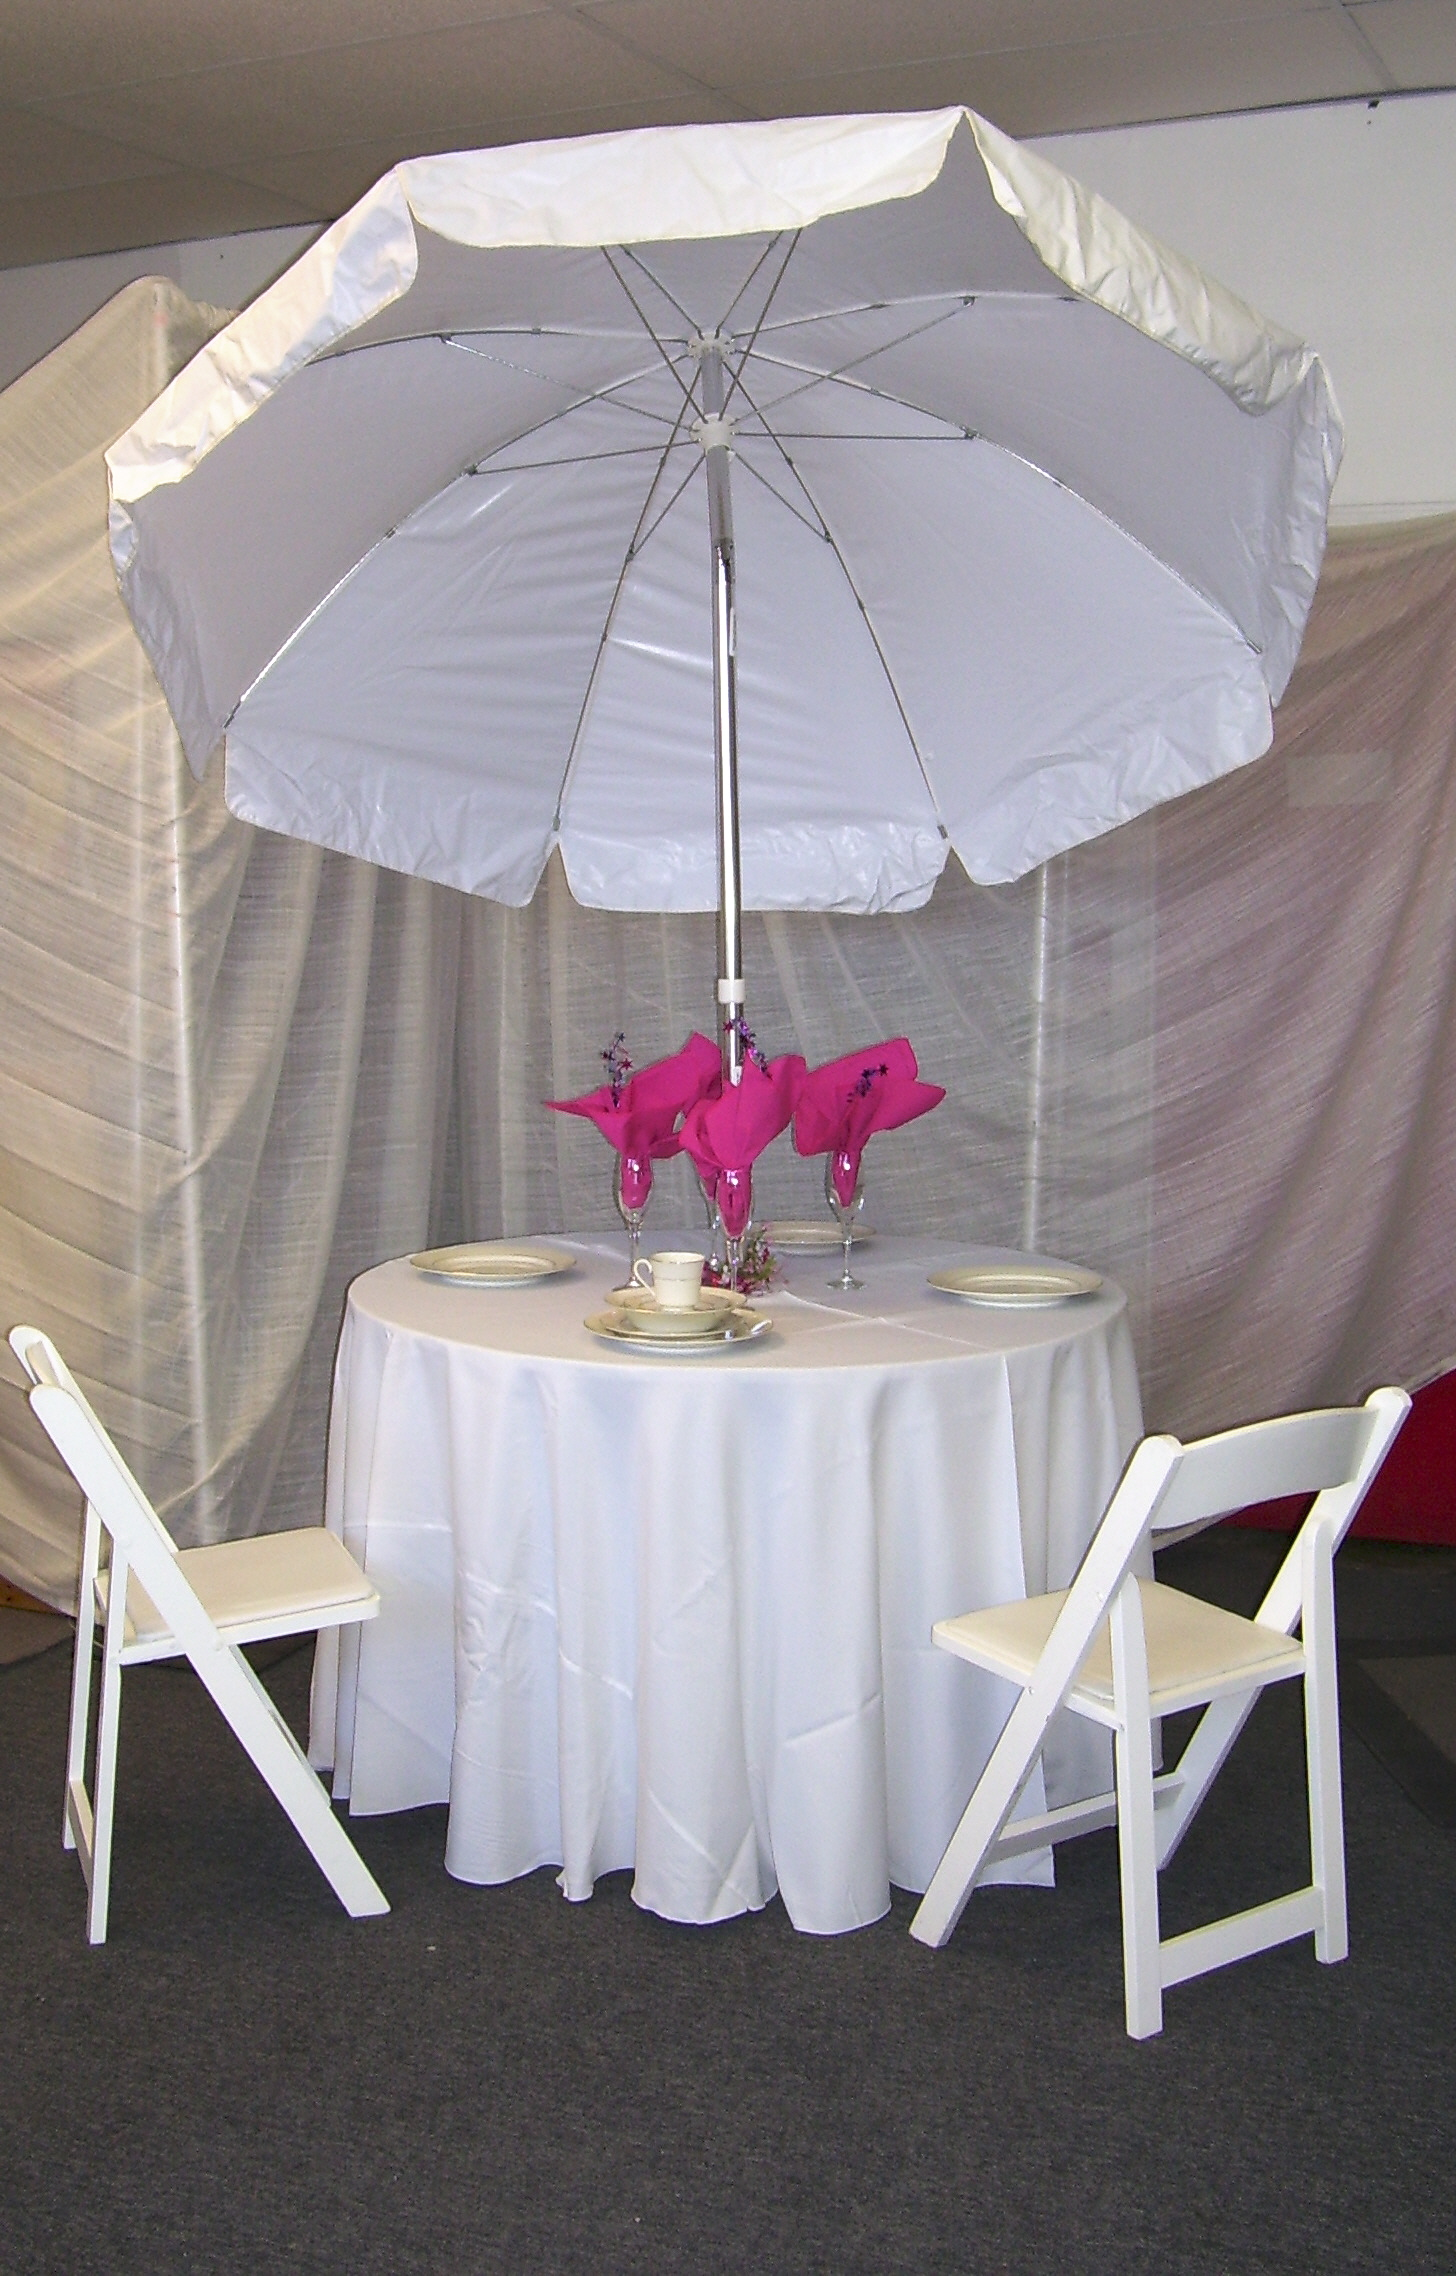 umbrella setup 01